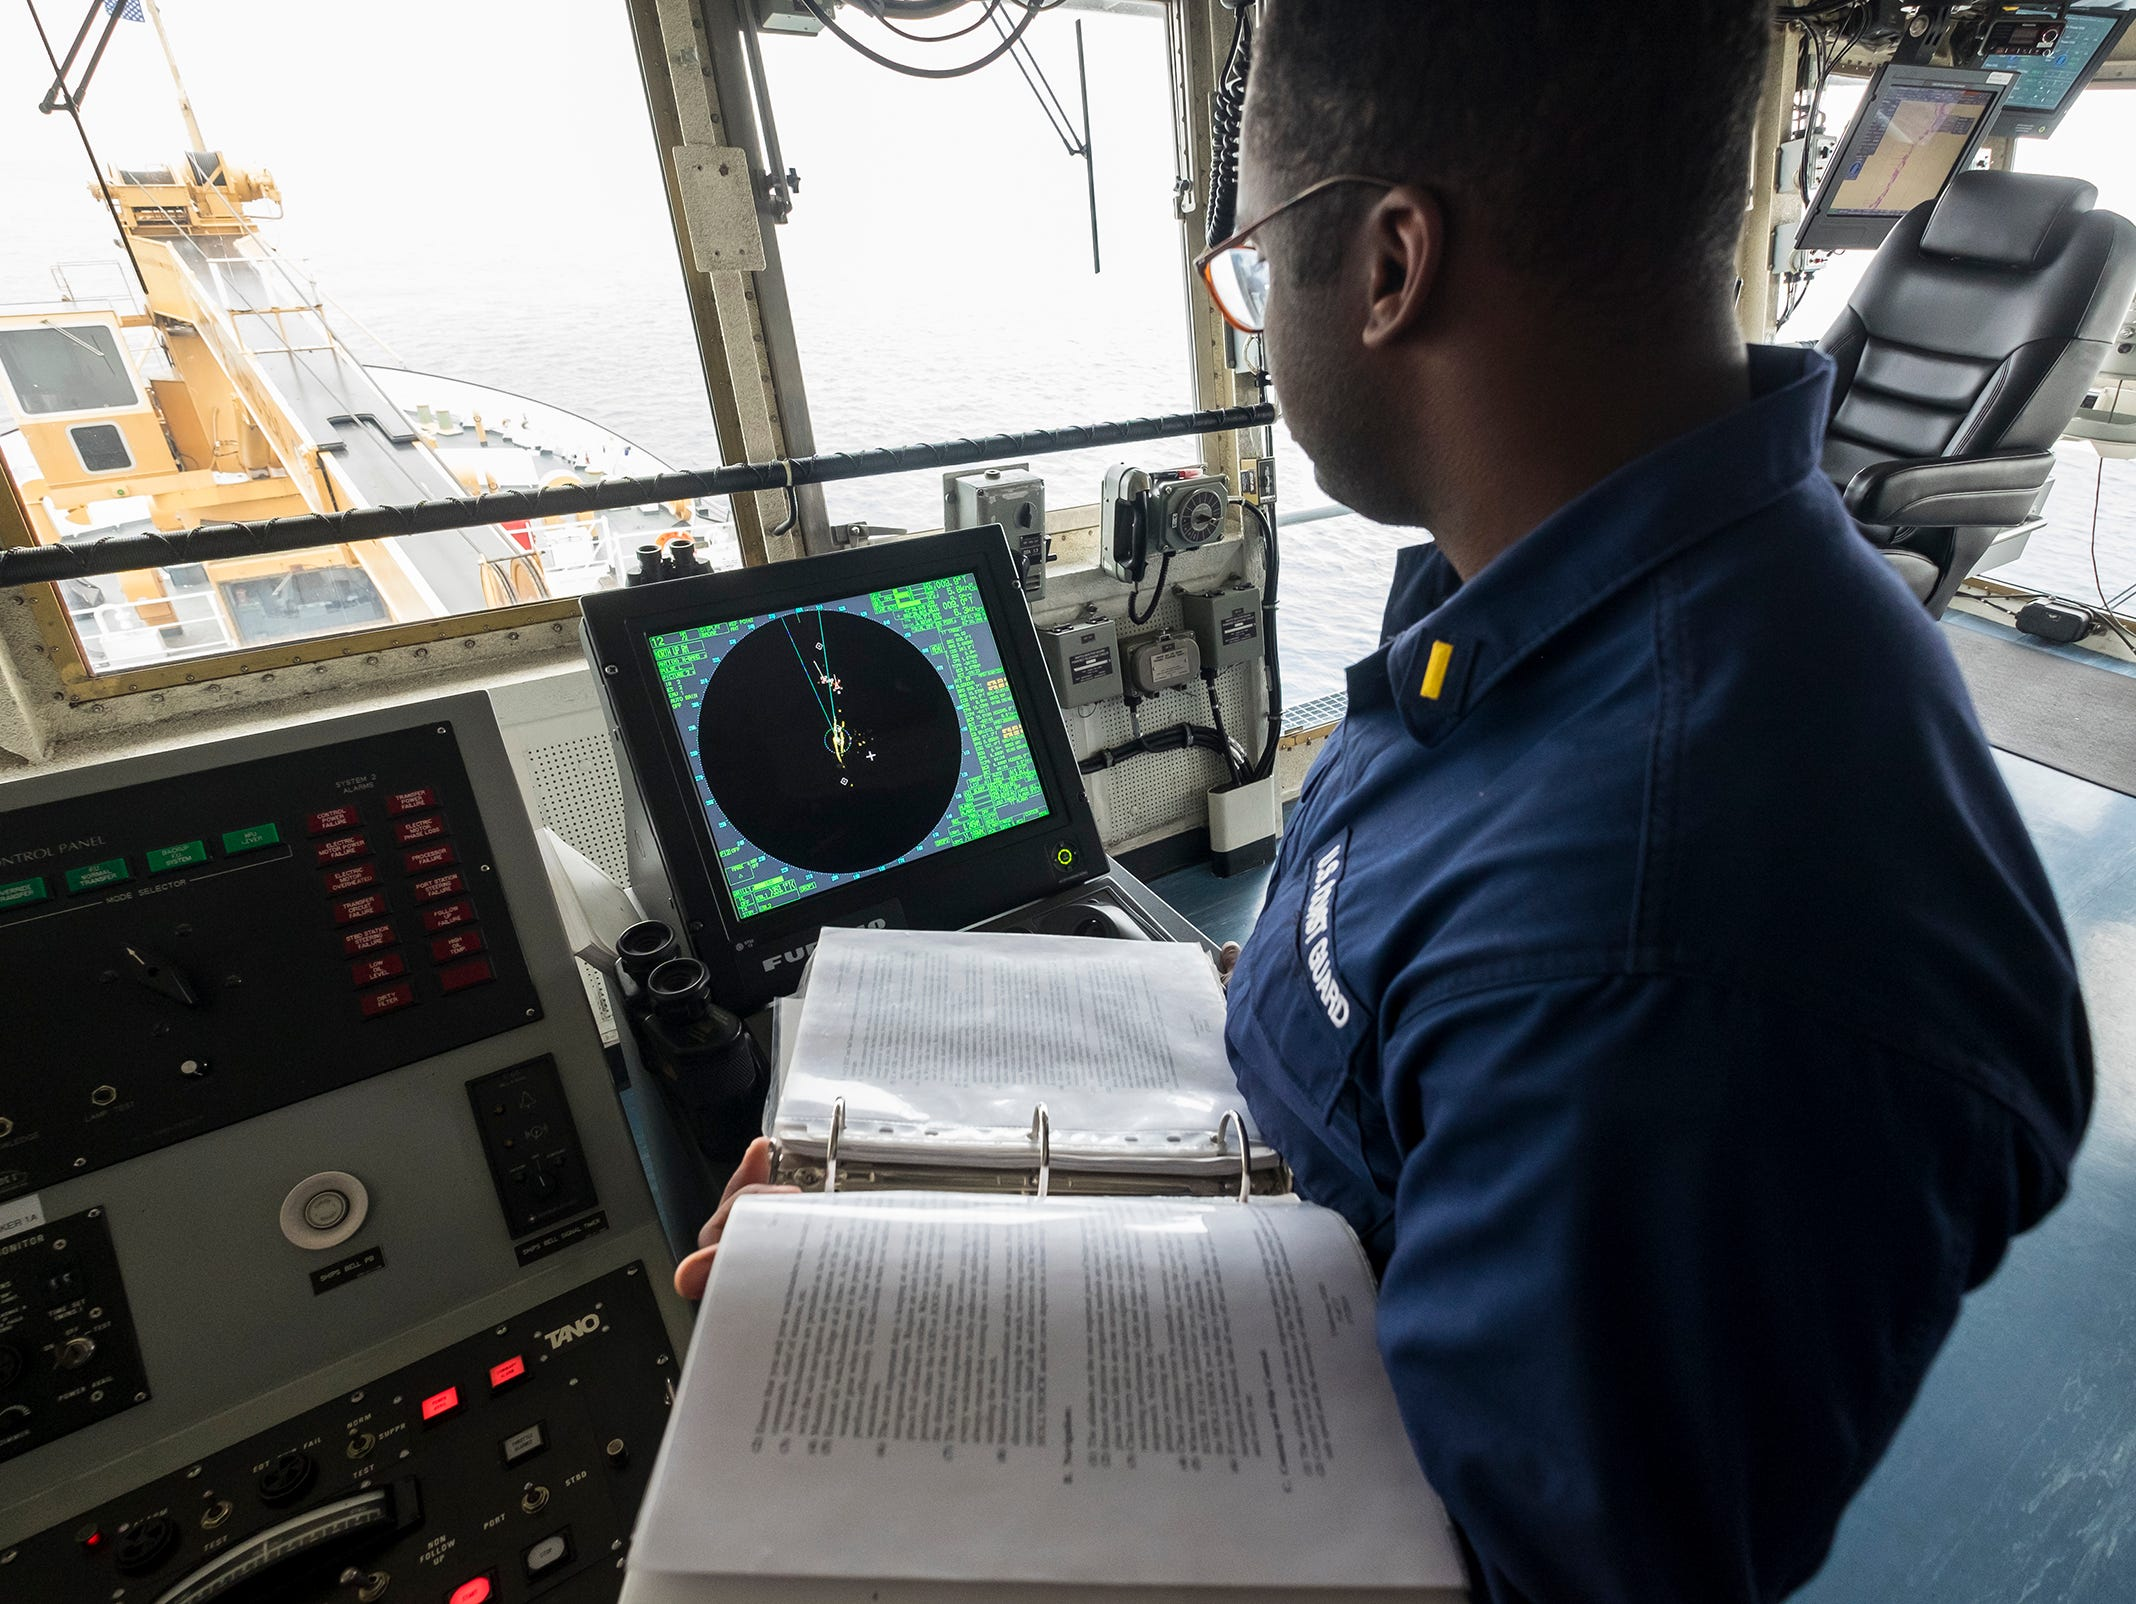 As rain and fog move into the area, Ensign Geremy Kendrick uses a radar on the Hollyhock's bridge to help detect land and other obstacles nearby.